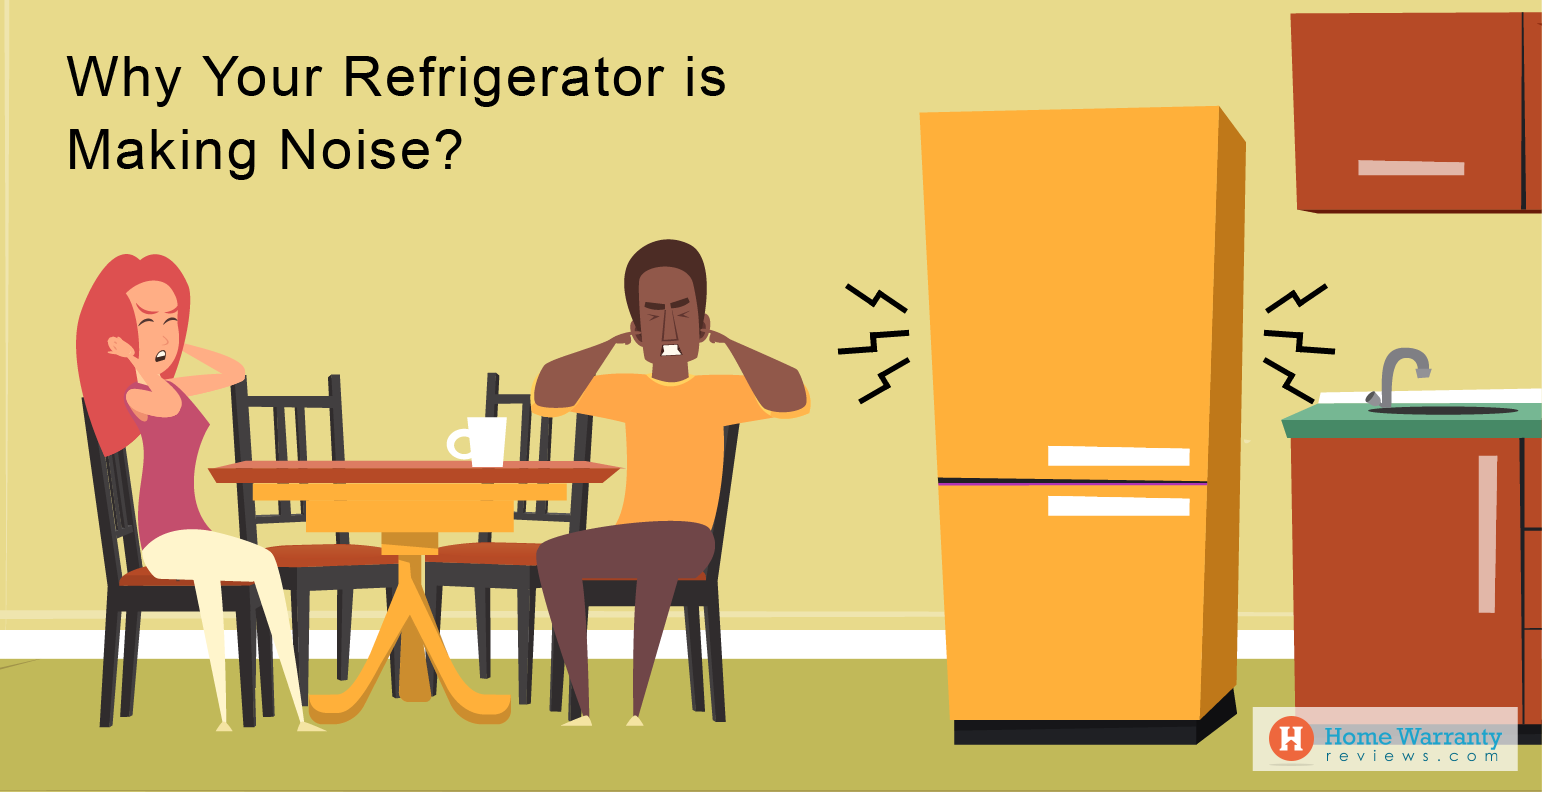 Reasons Why Your Refrigerator is Making Noise